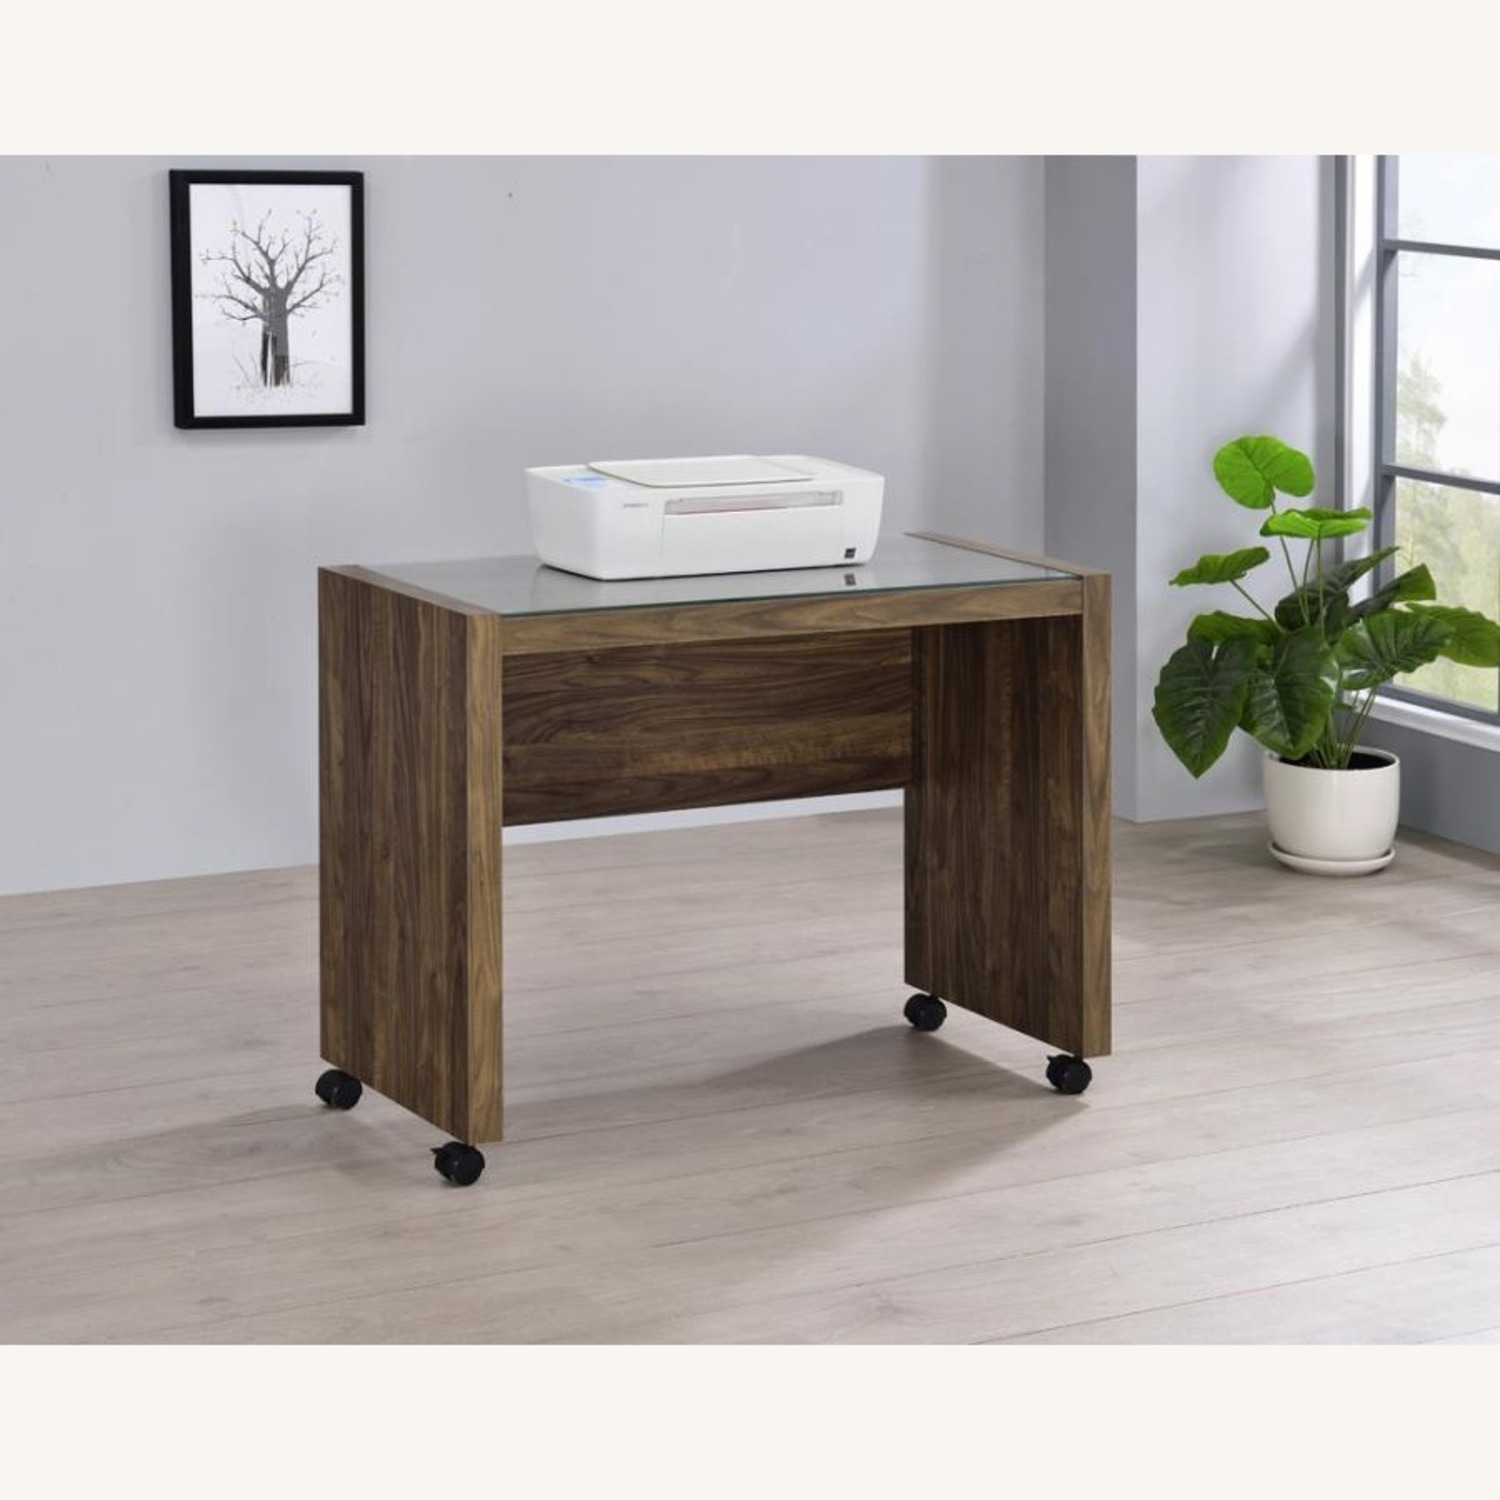 Mobile Return On Casters In Aged Walnut Finish  - image-5